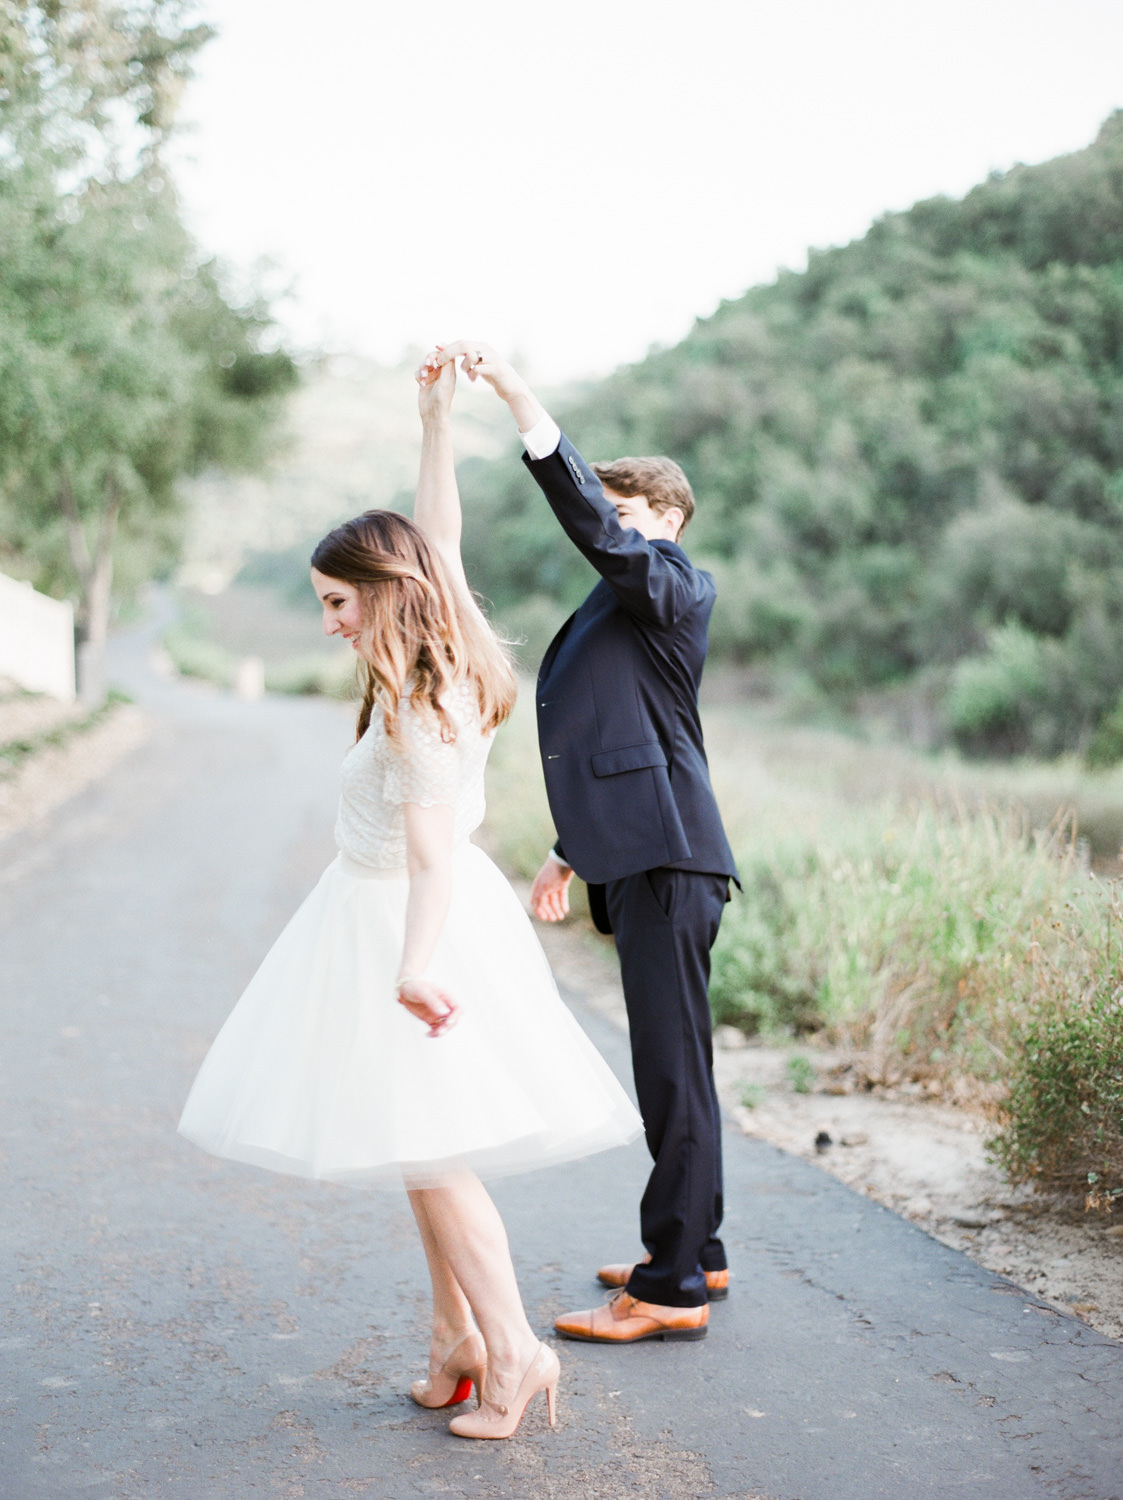 Sophisticated & Darling Film Anniversary Session in San Diego by Cavin Elizabeth Photography on Contax 645